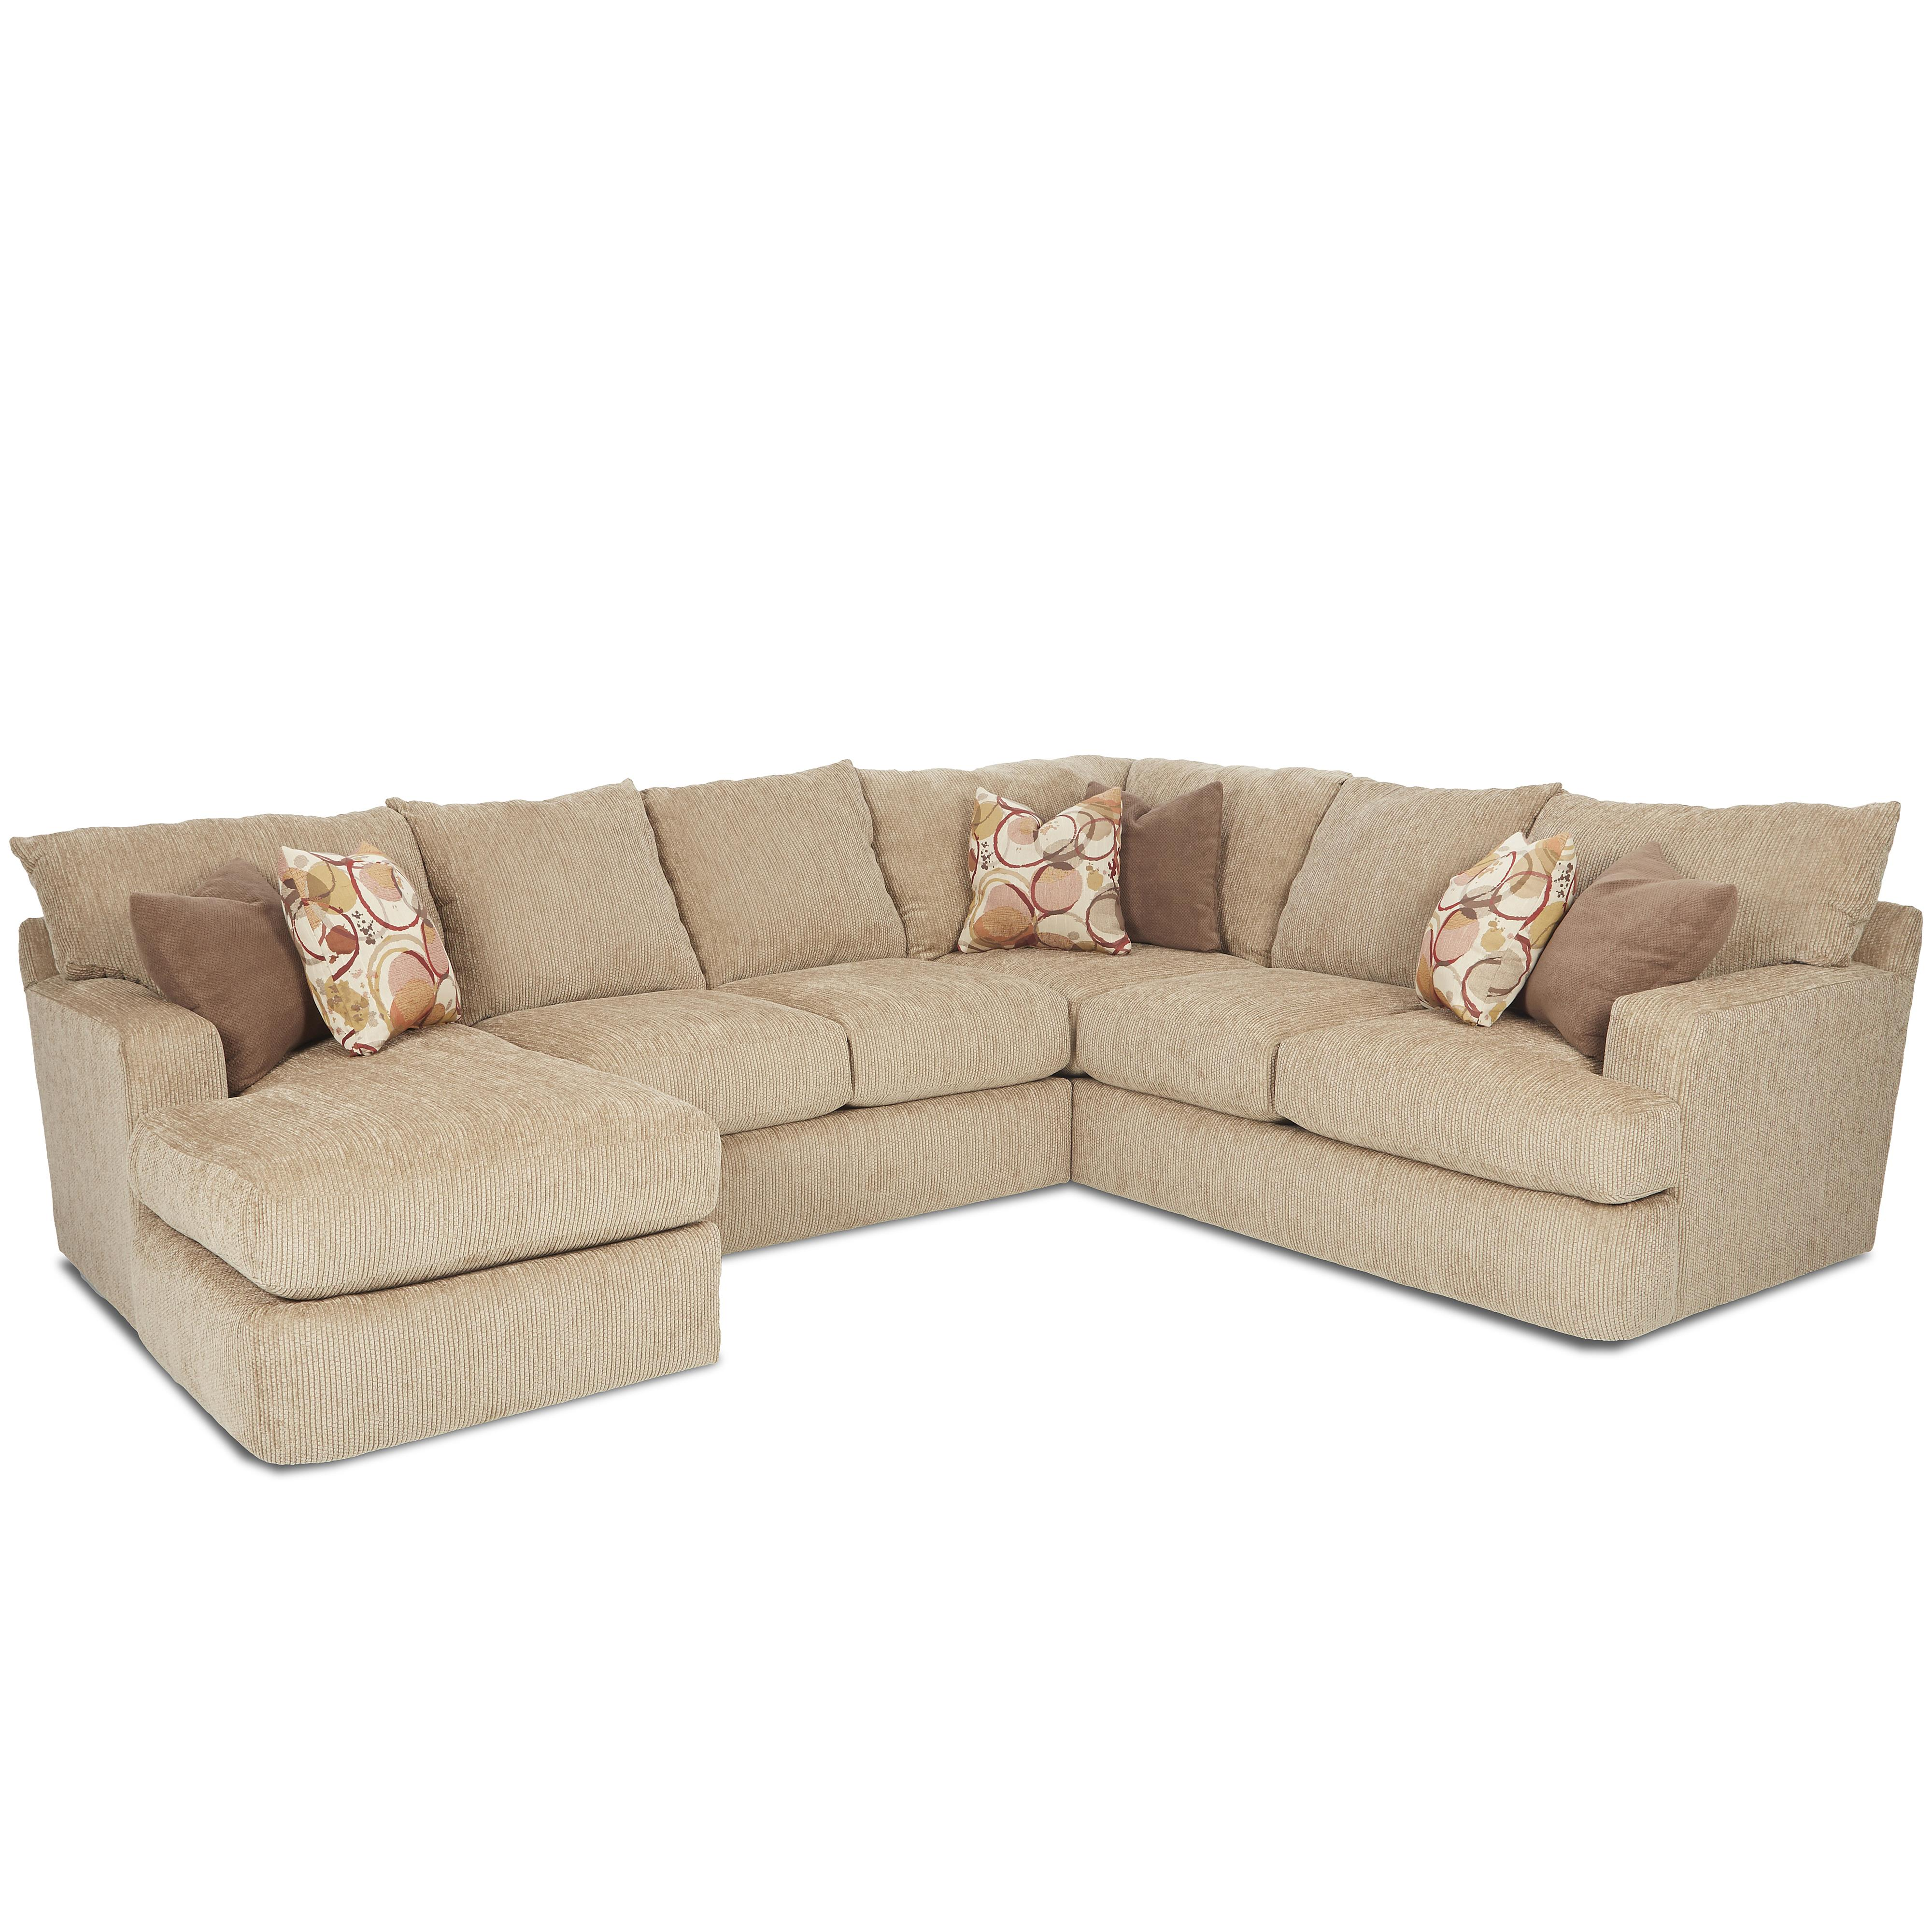 Oliver Sectional Sofa by Klaussner at Stuckey Furniture